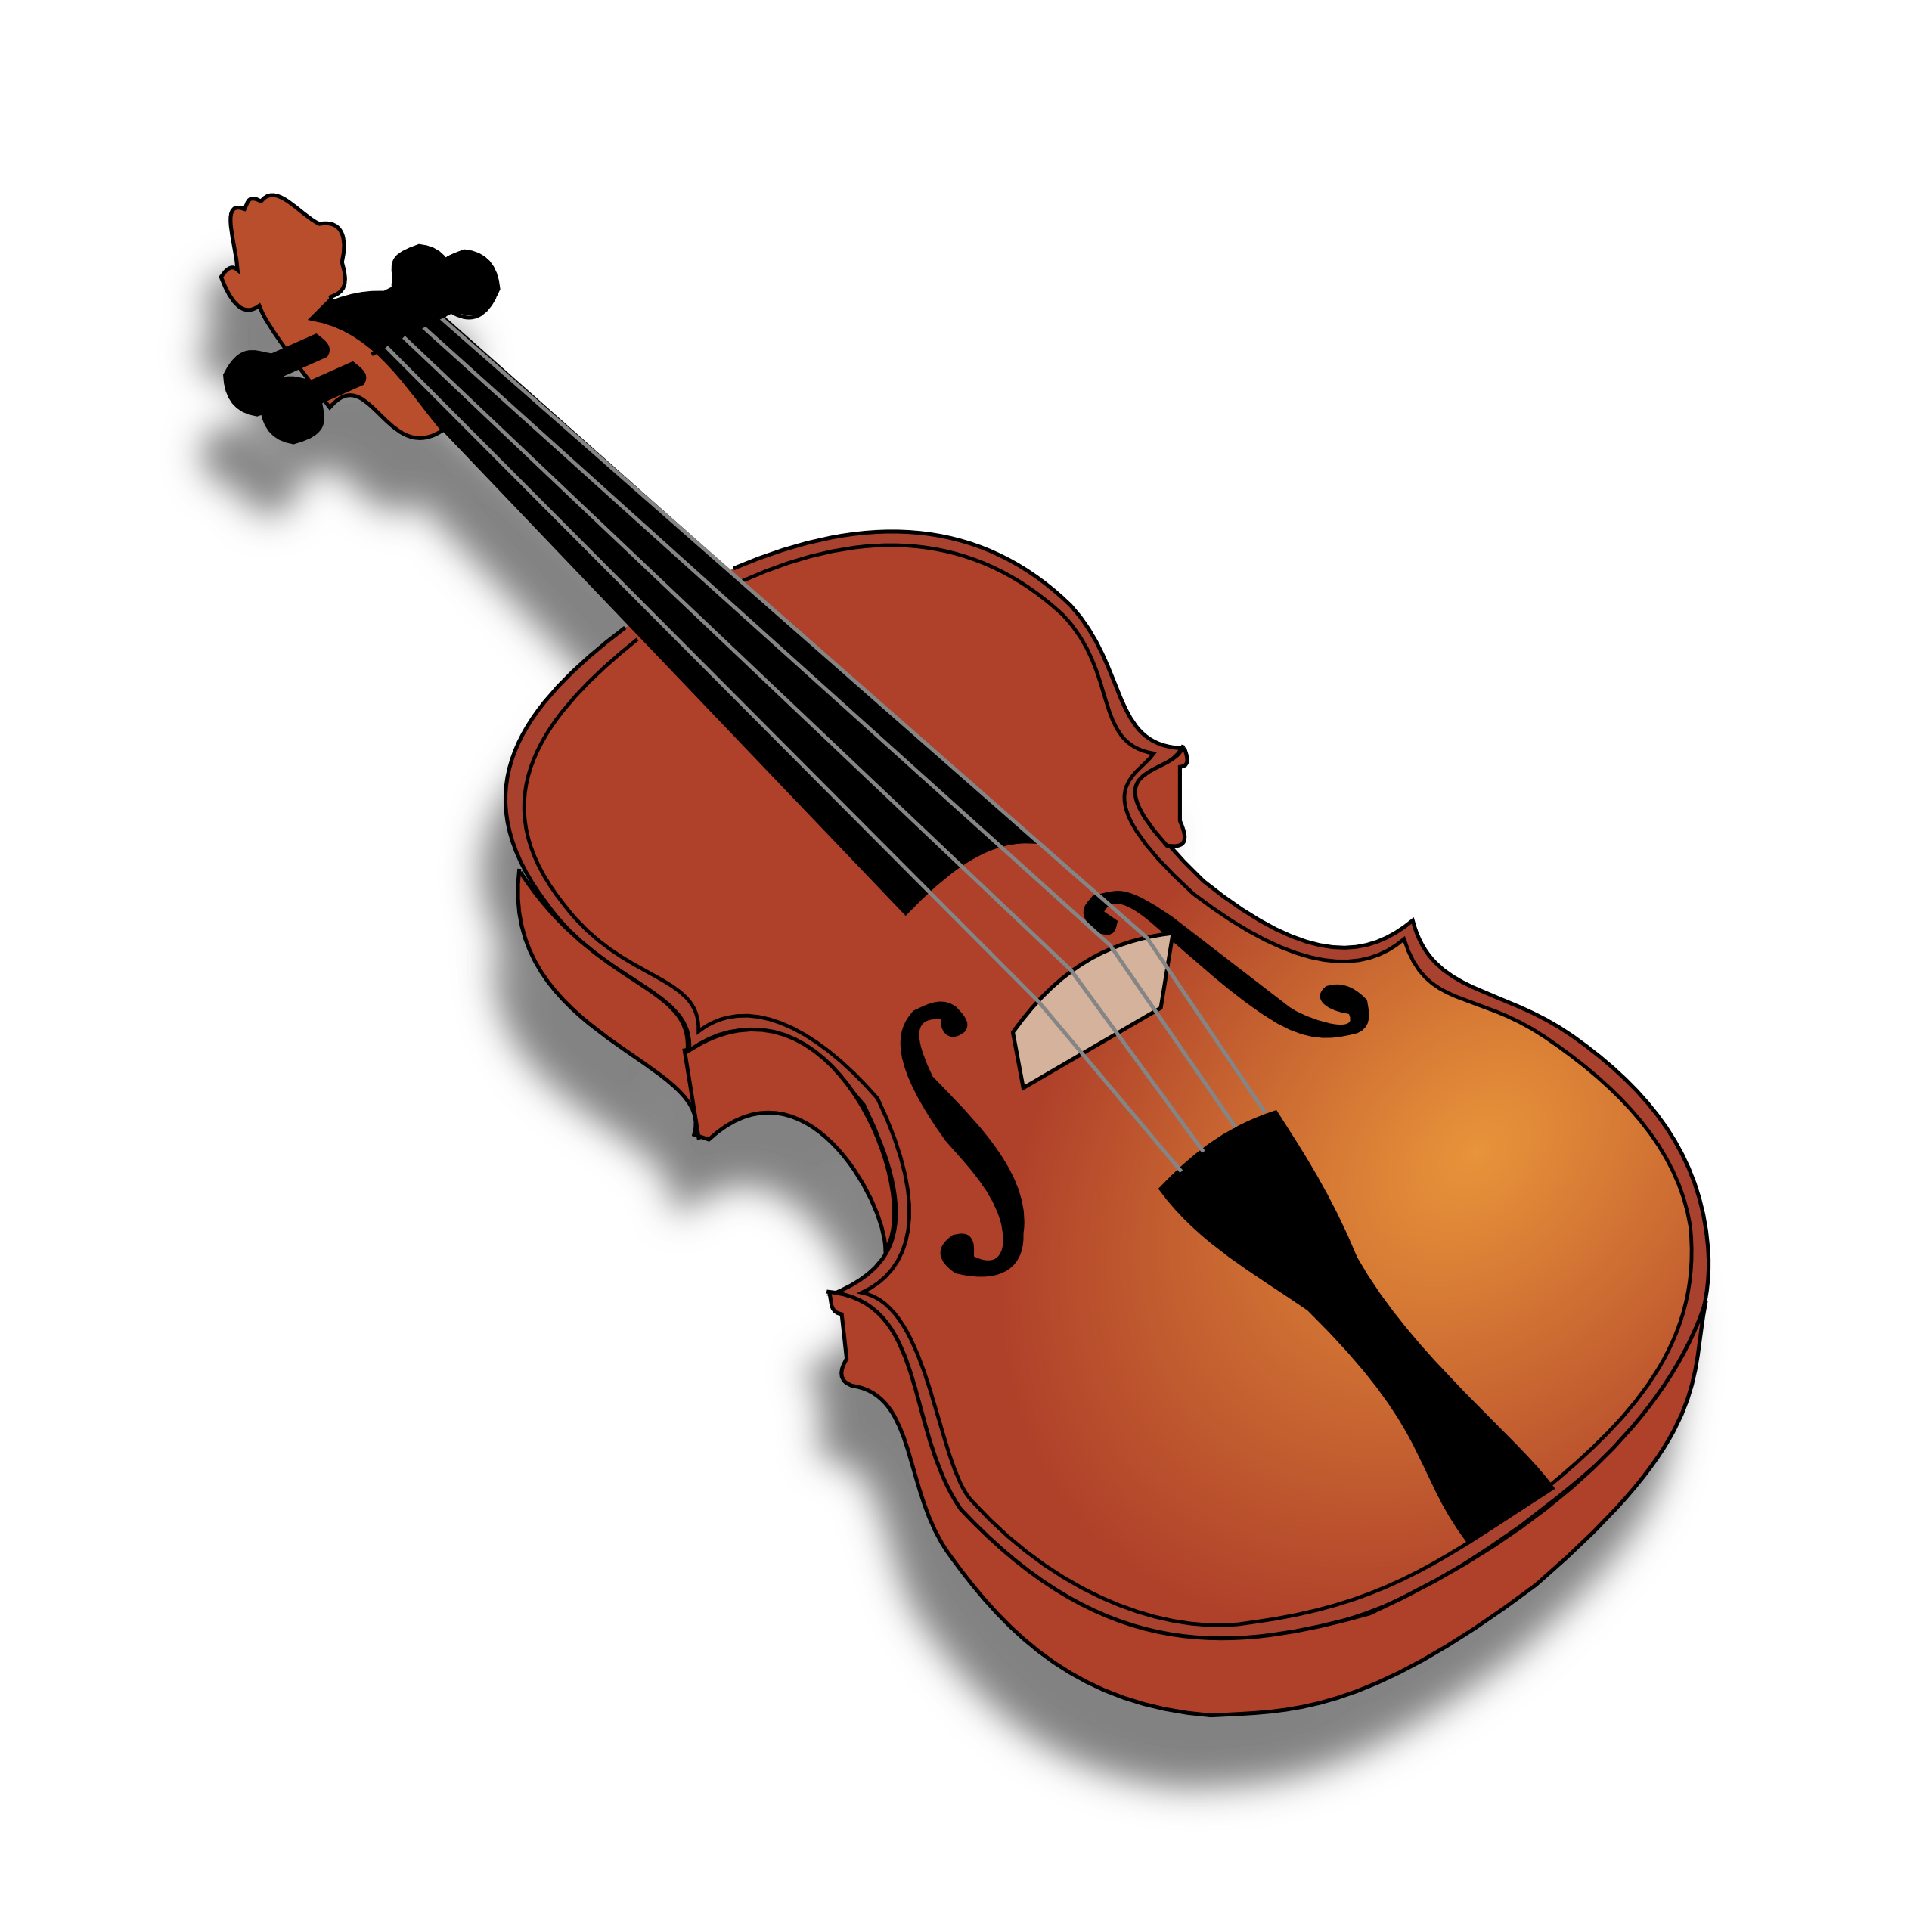 black singles in viola Get the guaranteed best price on violin mutes like the tourte single hole violin viola mute at musician's friend get a low price and free shipping on thousands of items.